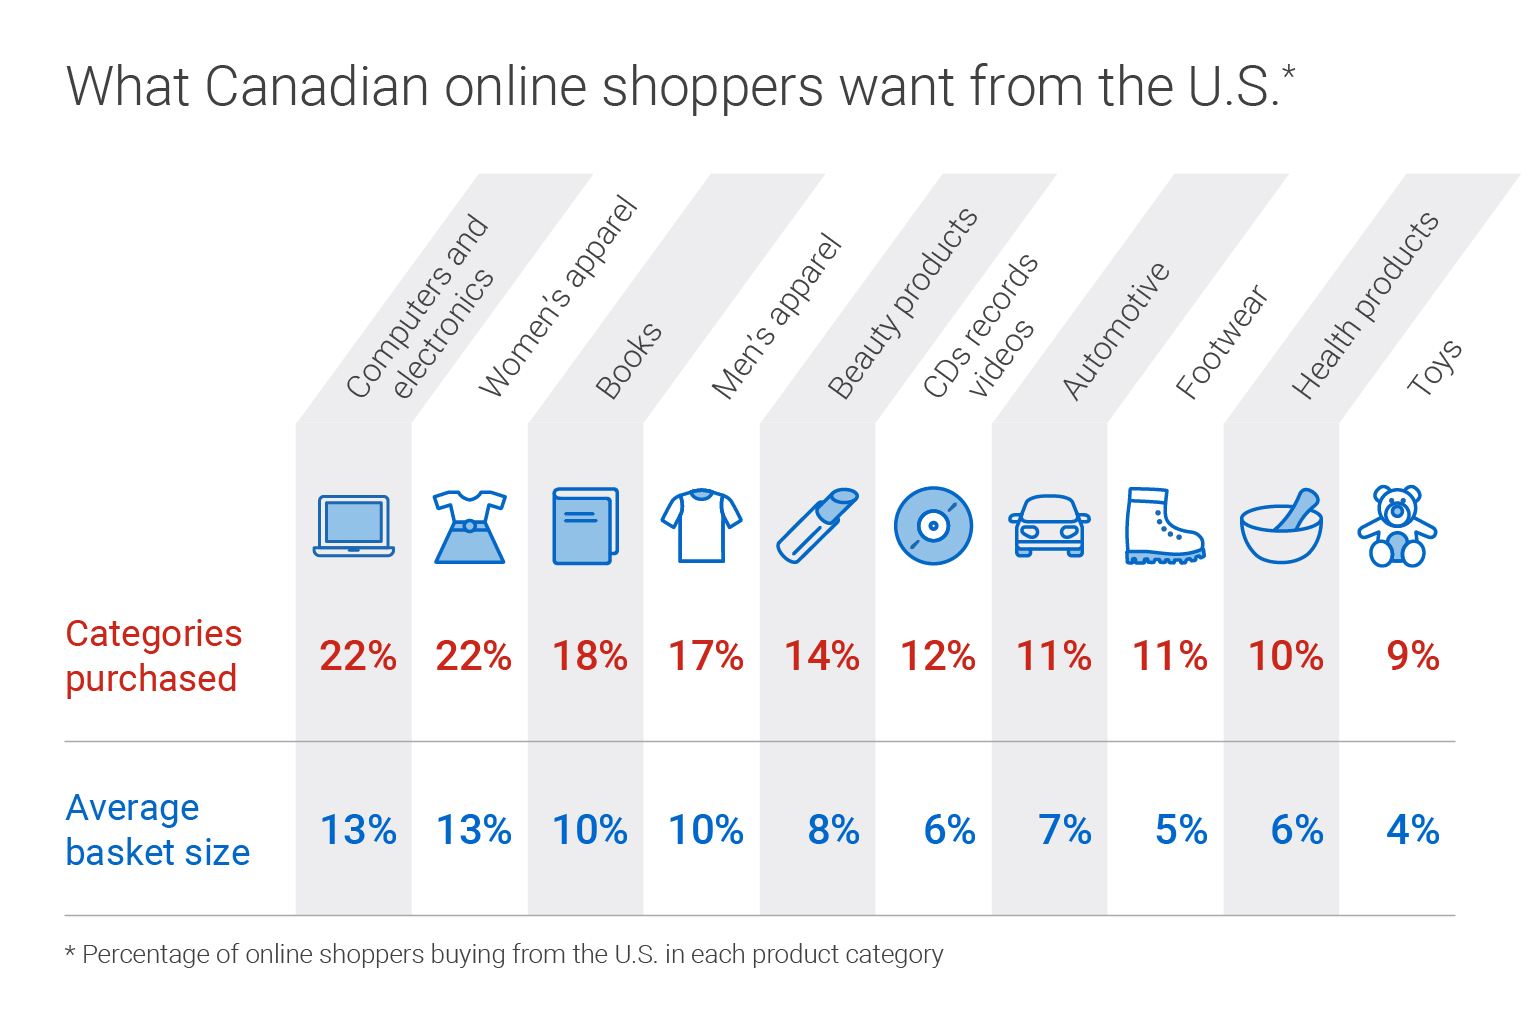 What Canadian online shoppers want from the U.S. (Percentage of online shoppers buying from the U.S. in each product category). Categories purchased: 22 per cent computers and electronics (13 per cent average basket size), 22 per cent women's apparel (13 per cent average basket size), 18 per cent books (10 per cent average basket size), 17 per cent men's apparel (10 per cent average basket size), 14 per cent beauty products (8 per cent average basket size), 12 per cent CDs records and videos (6 per cent average basket size), 11 per cent automotive (7 per cent average basket size), 11 per cent footwear (5 per cent average basket size), 10 per cent health products (6 per cent average basket size), and 9 per cent toys (4 per cent average basket size).